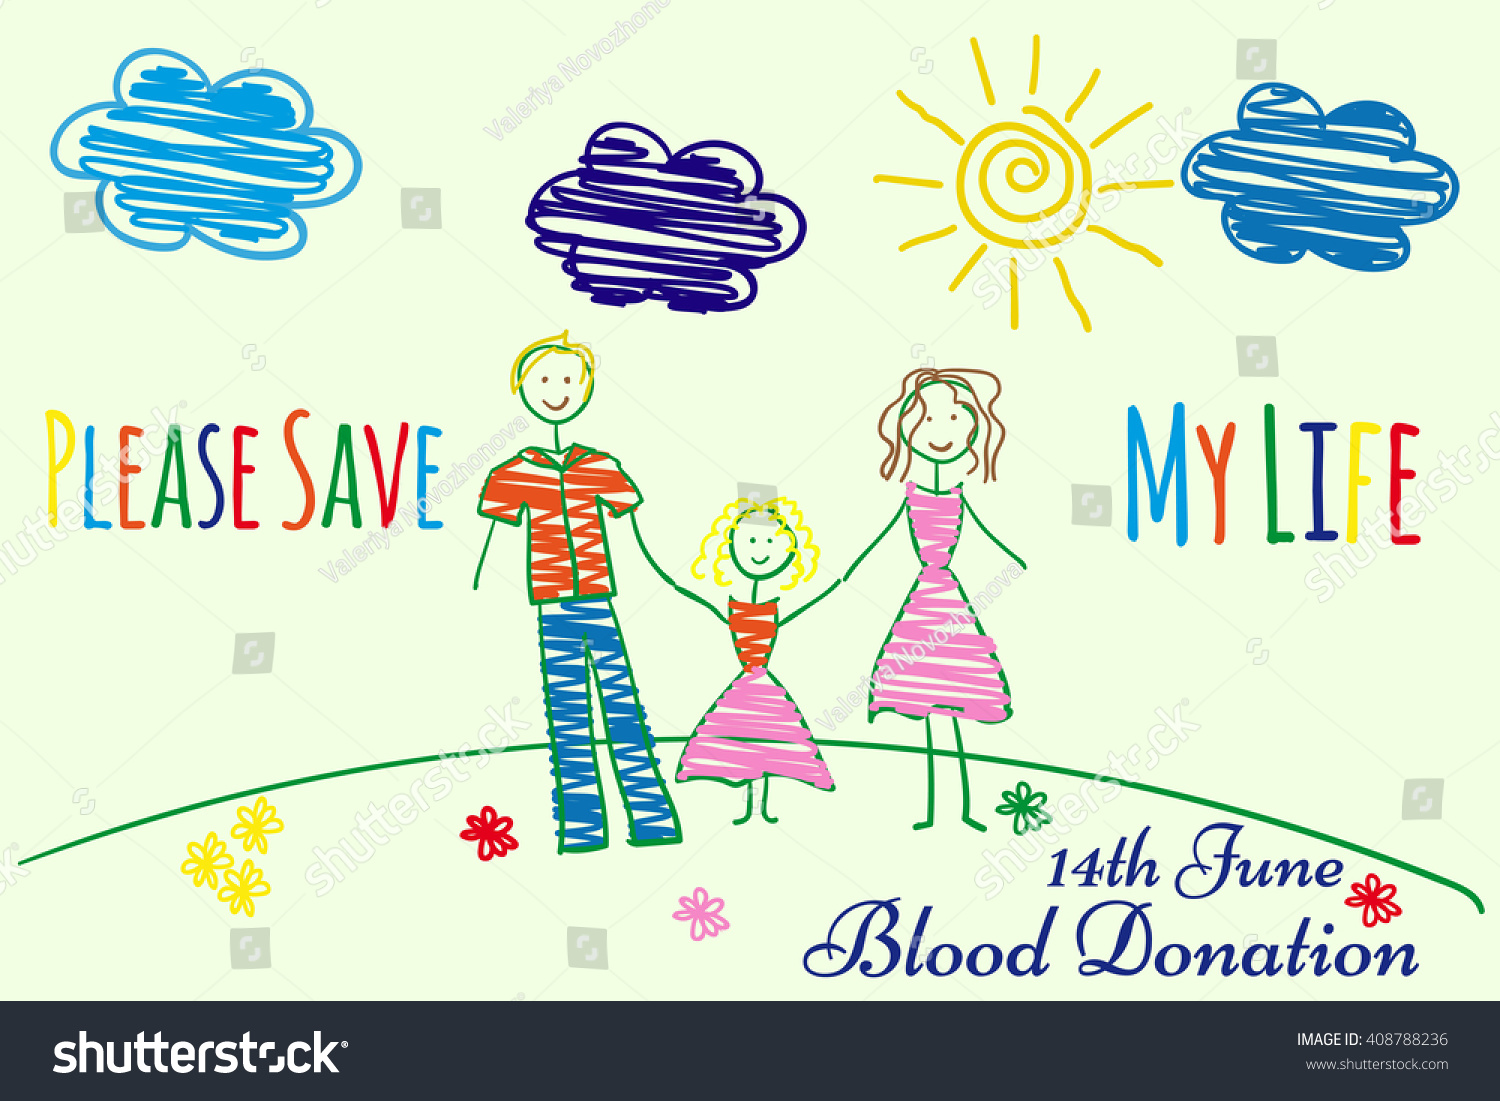 Blood donation cartoon posters